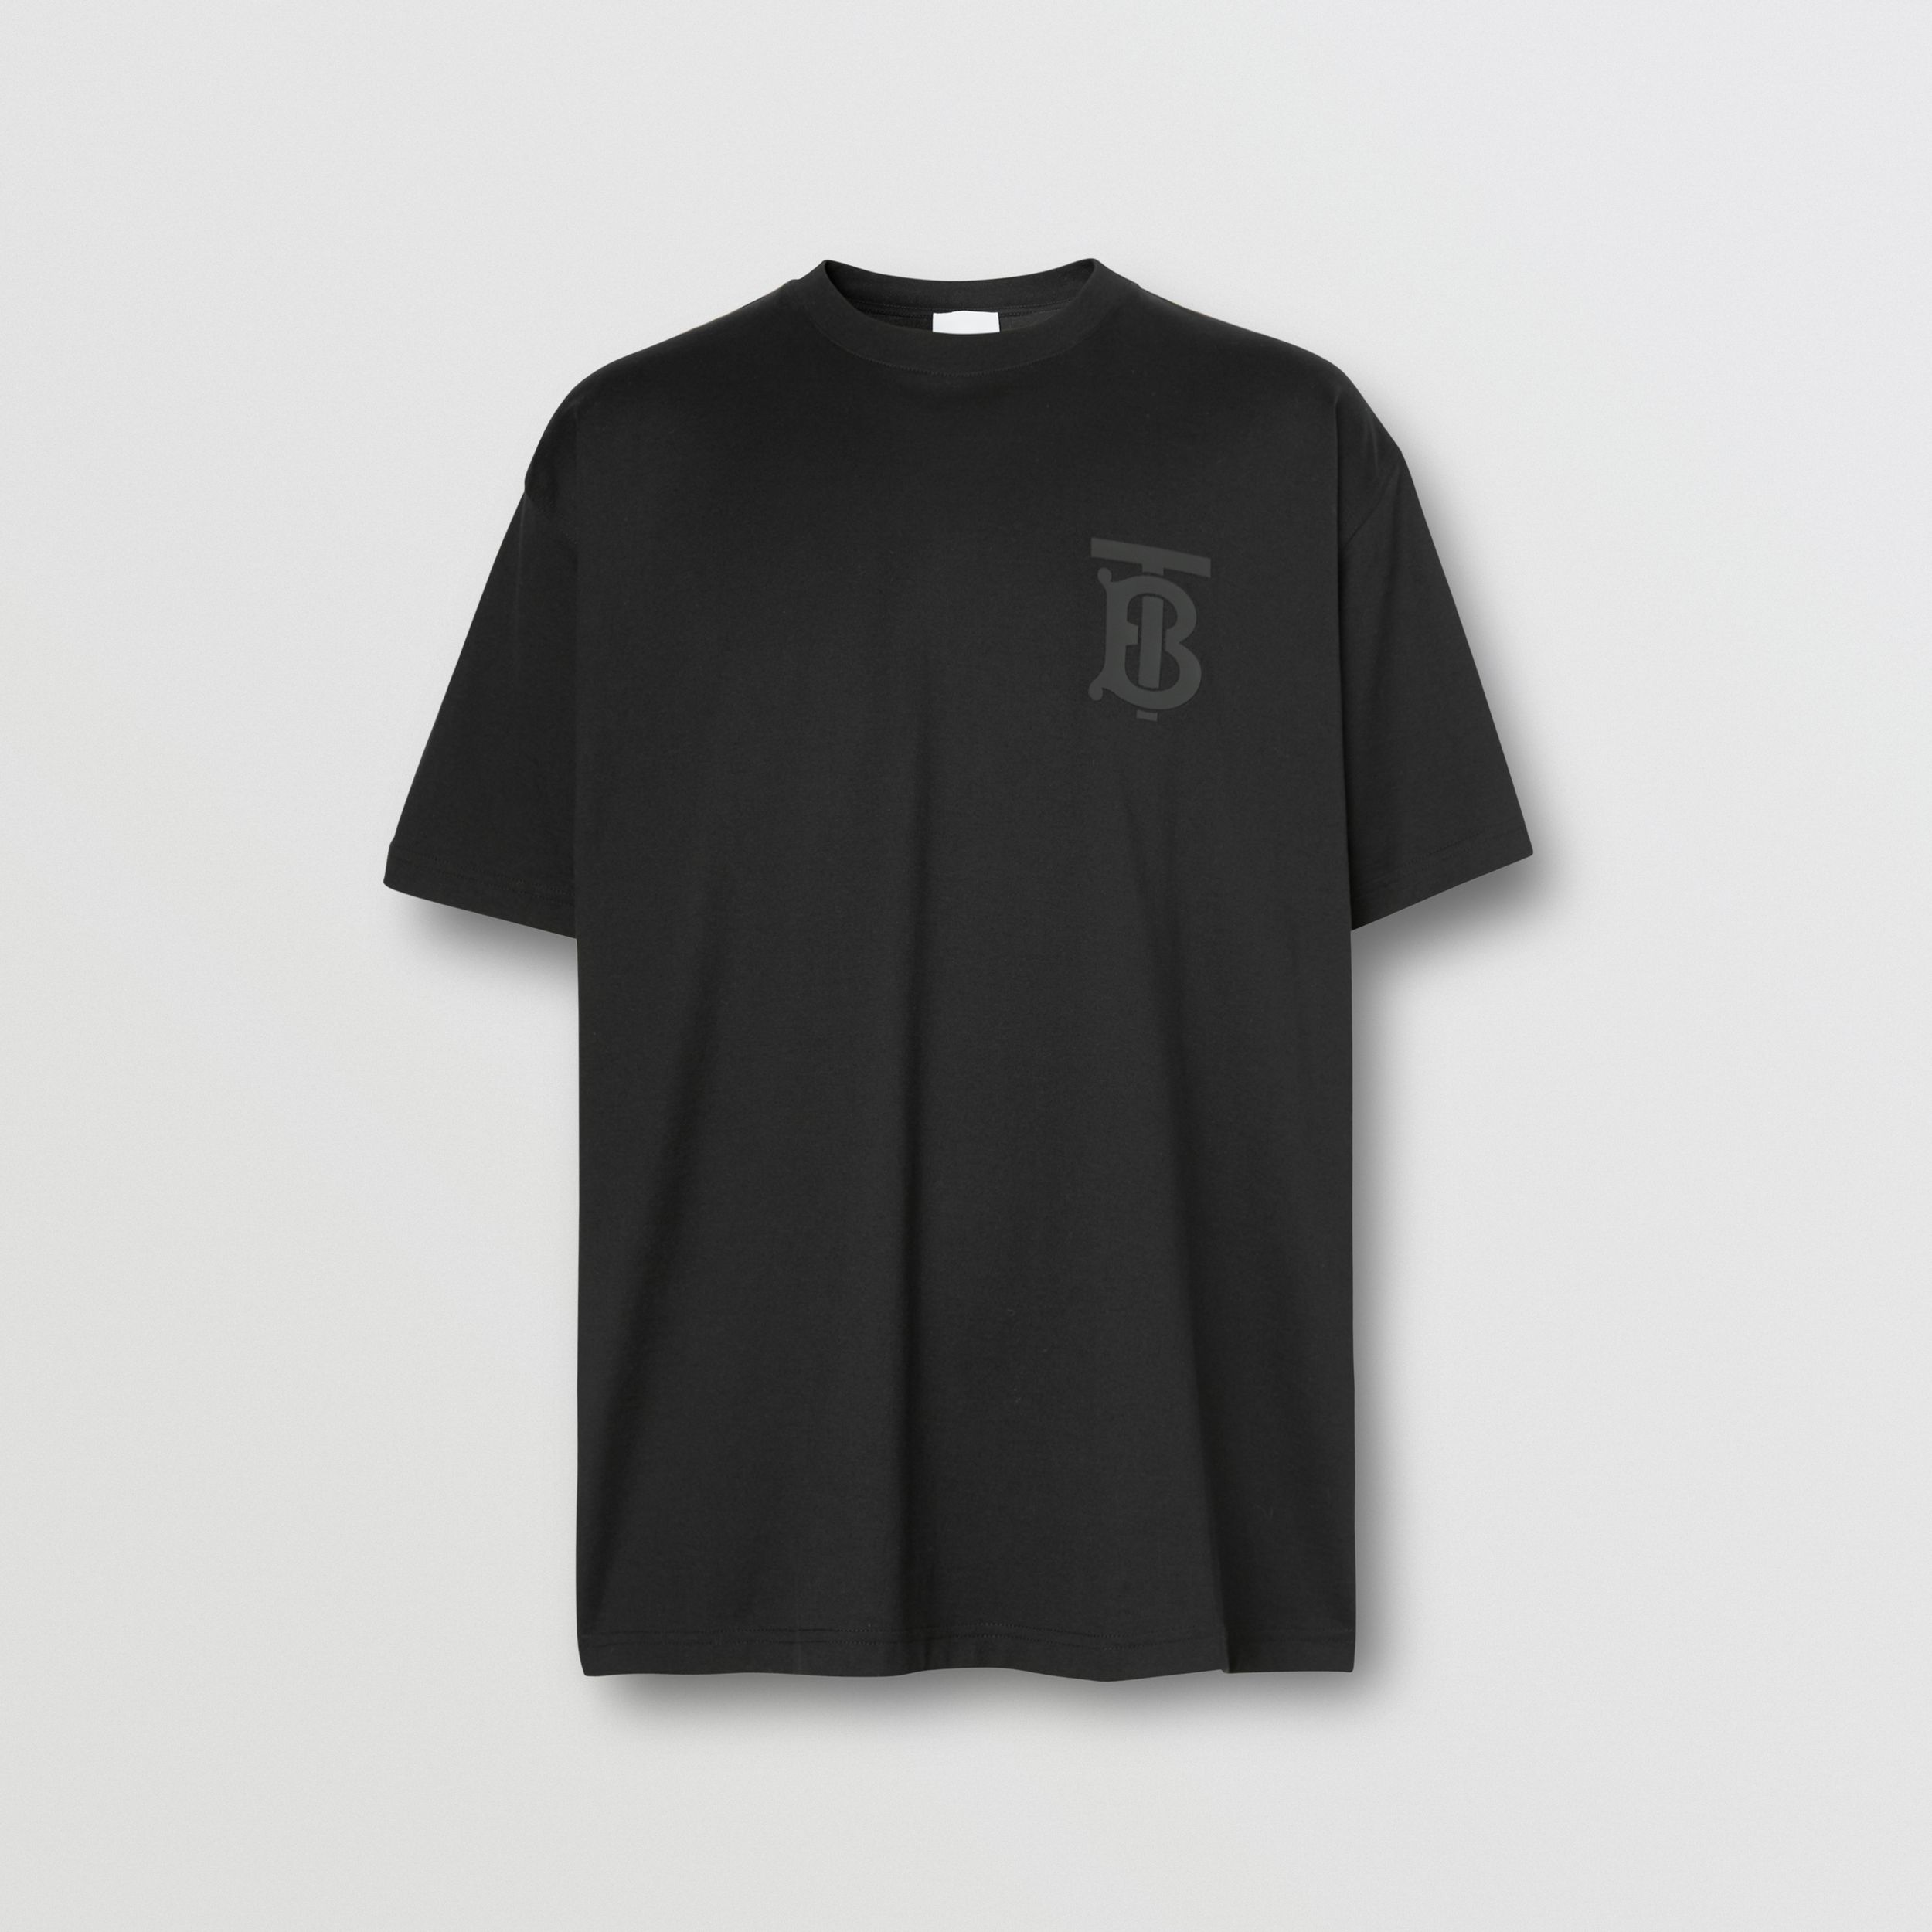 Monogram Motif Cotton Oversized T-shirt in Black - Men | Burberry - 4